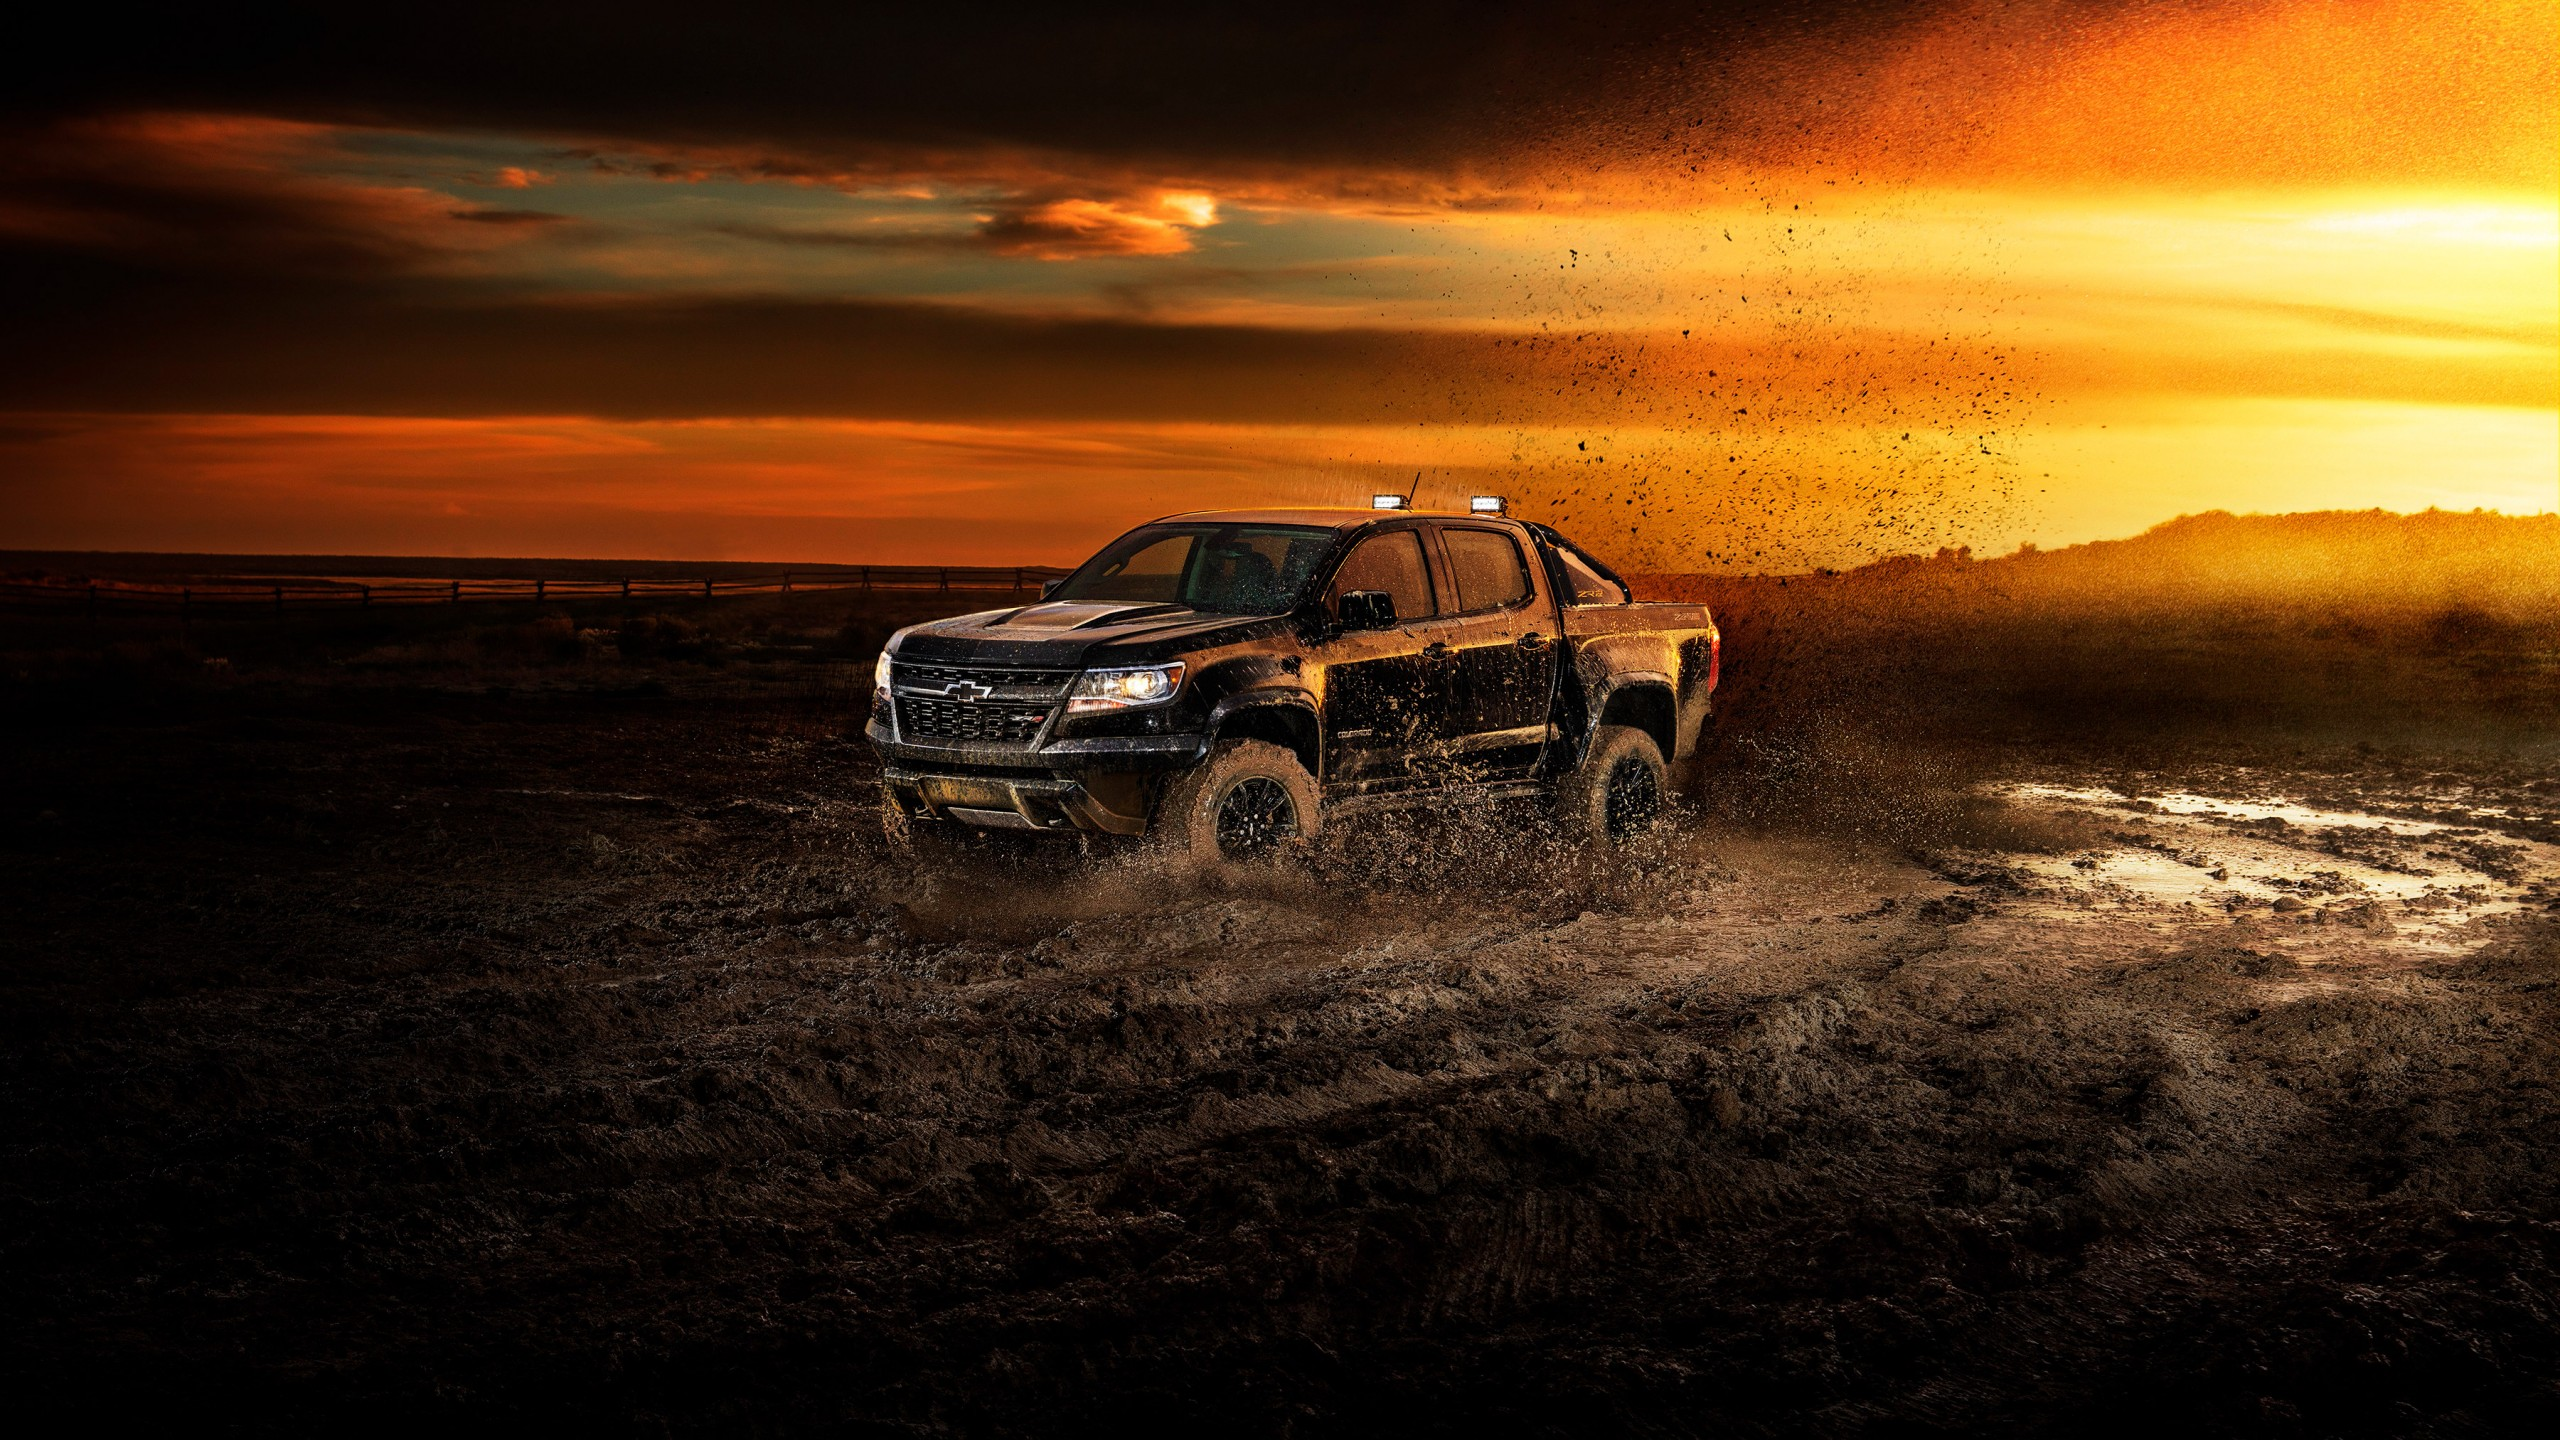 Background Wallpaper Quotes Wallpaper Chevrolet Colorado Zr2 2018 Cars 4k Cars